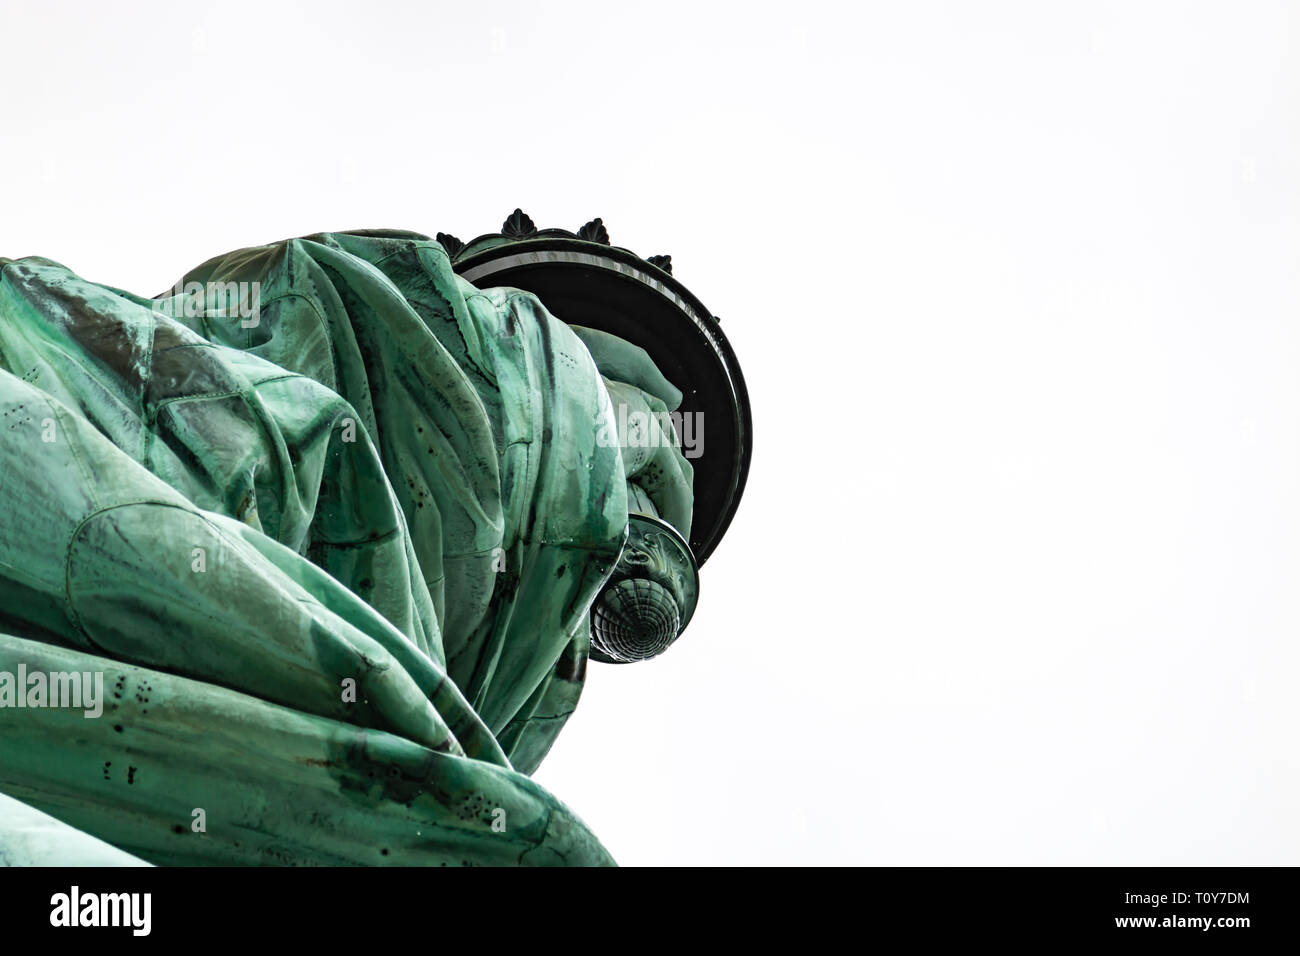 a close up of a rain-wet Statue of Liberty focussing on her arm and torch. - Stock Image